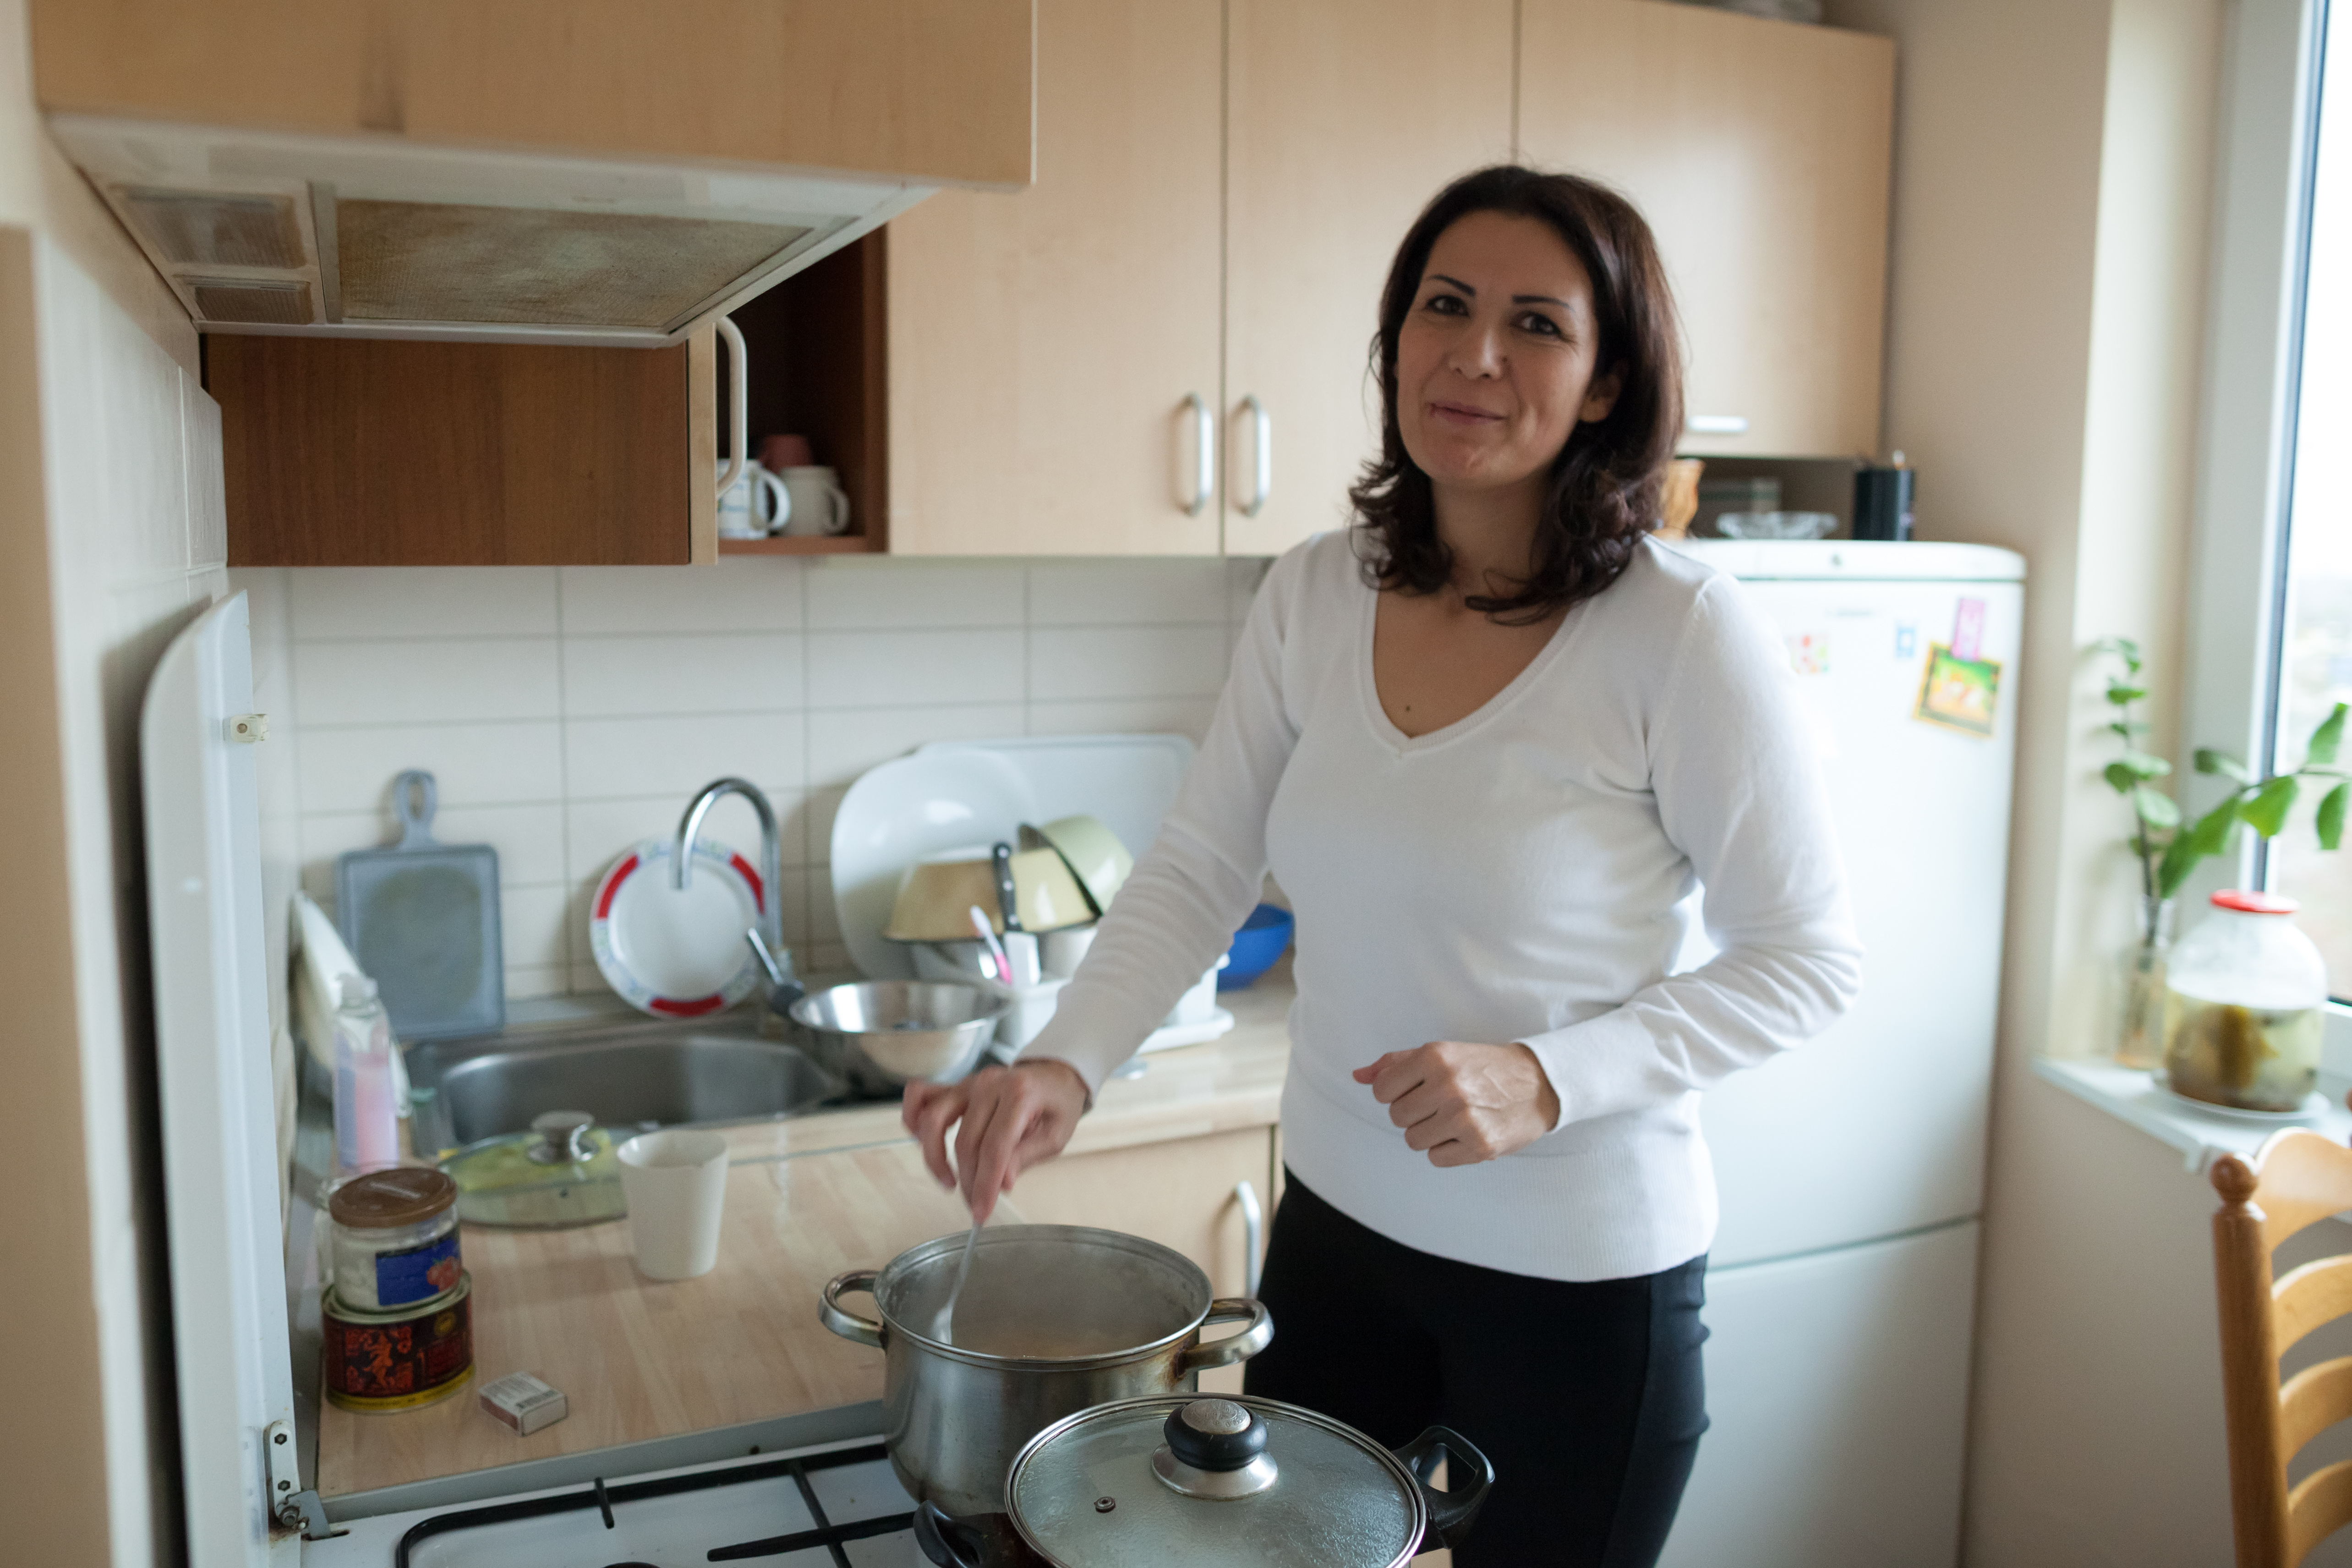 Pierre's wife Aida is a great hostess and chef. She has found a job and works at Ltd. Vita & Co, which produces handmade sweets. When at home, Aida finds pleasure in taking care of her family.